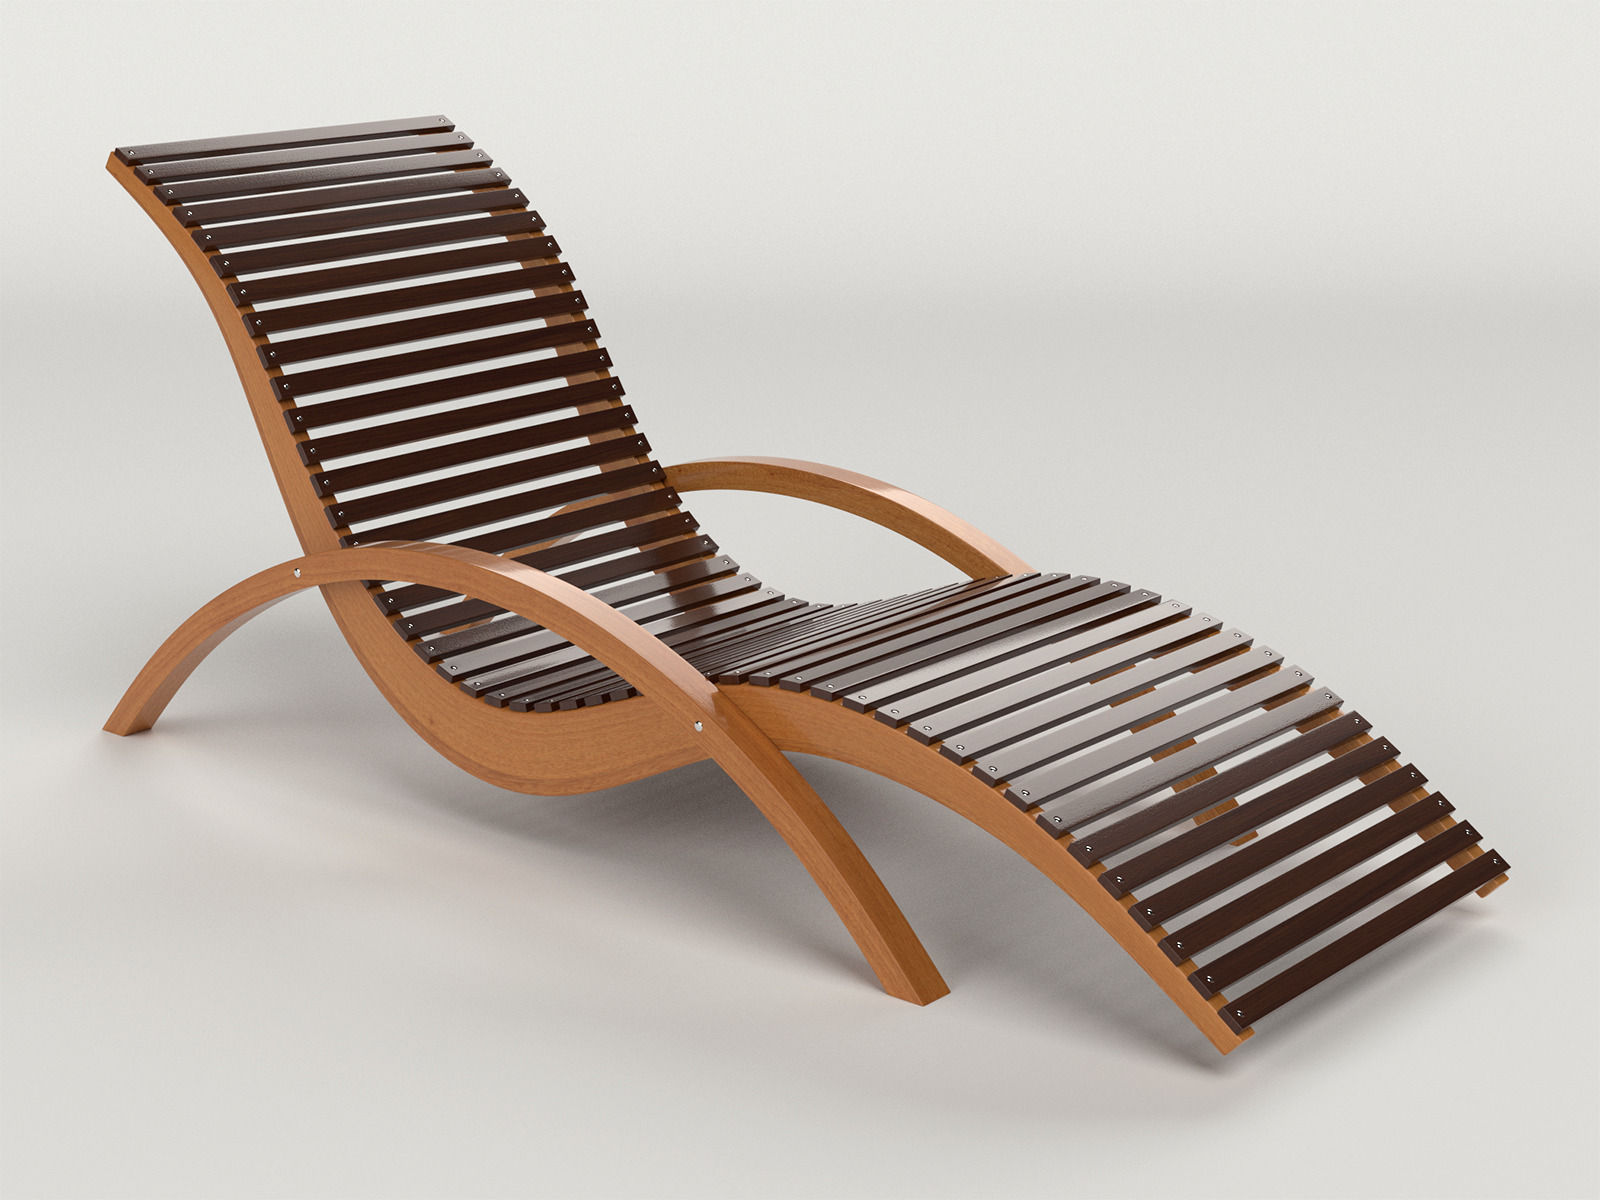 Wooden Lounge Chair Lounge Chair Outdoor Wood Patio Deck 3d Model Obj